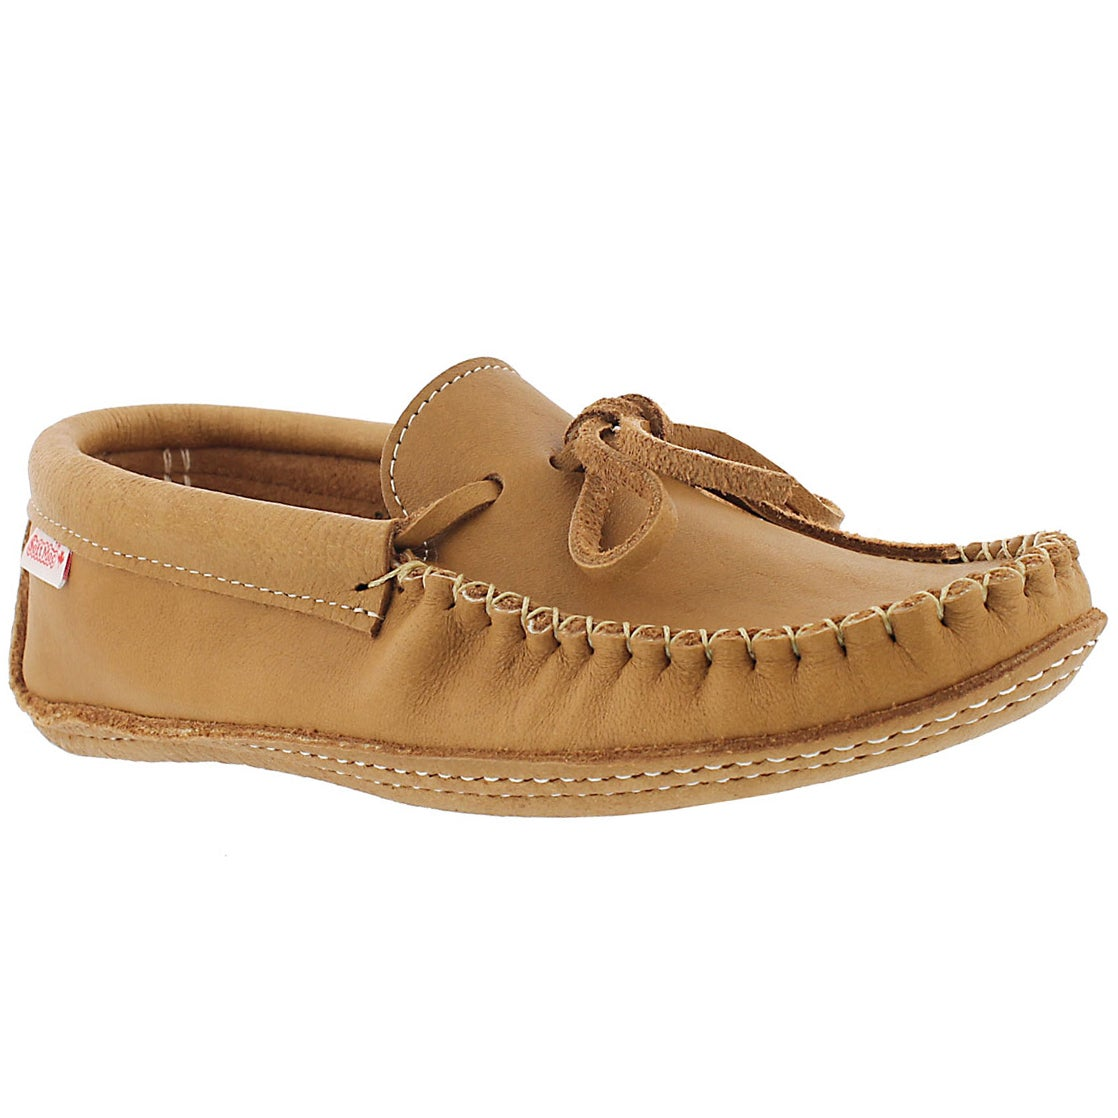 Mns cork double sole unlined moccasin